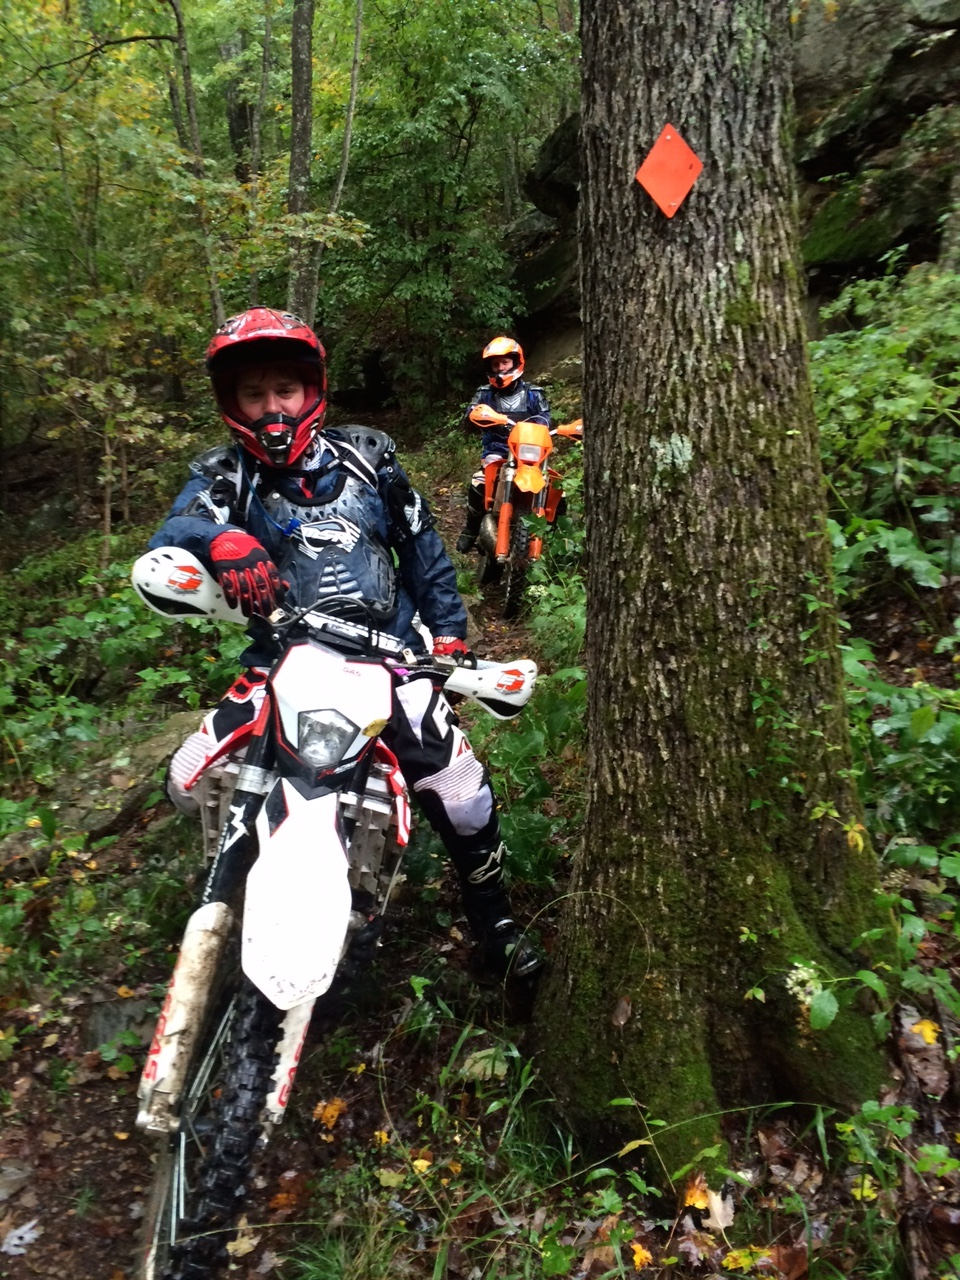 Tom (GasGas) & Tim (KTM) Riding Red Bird in the Rain